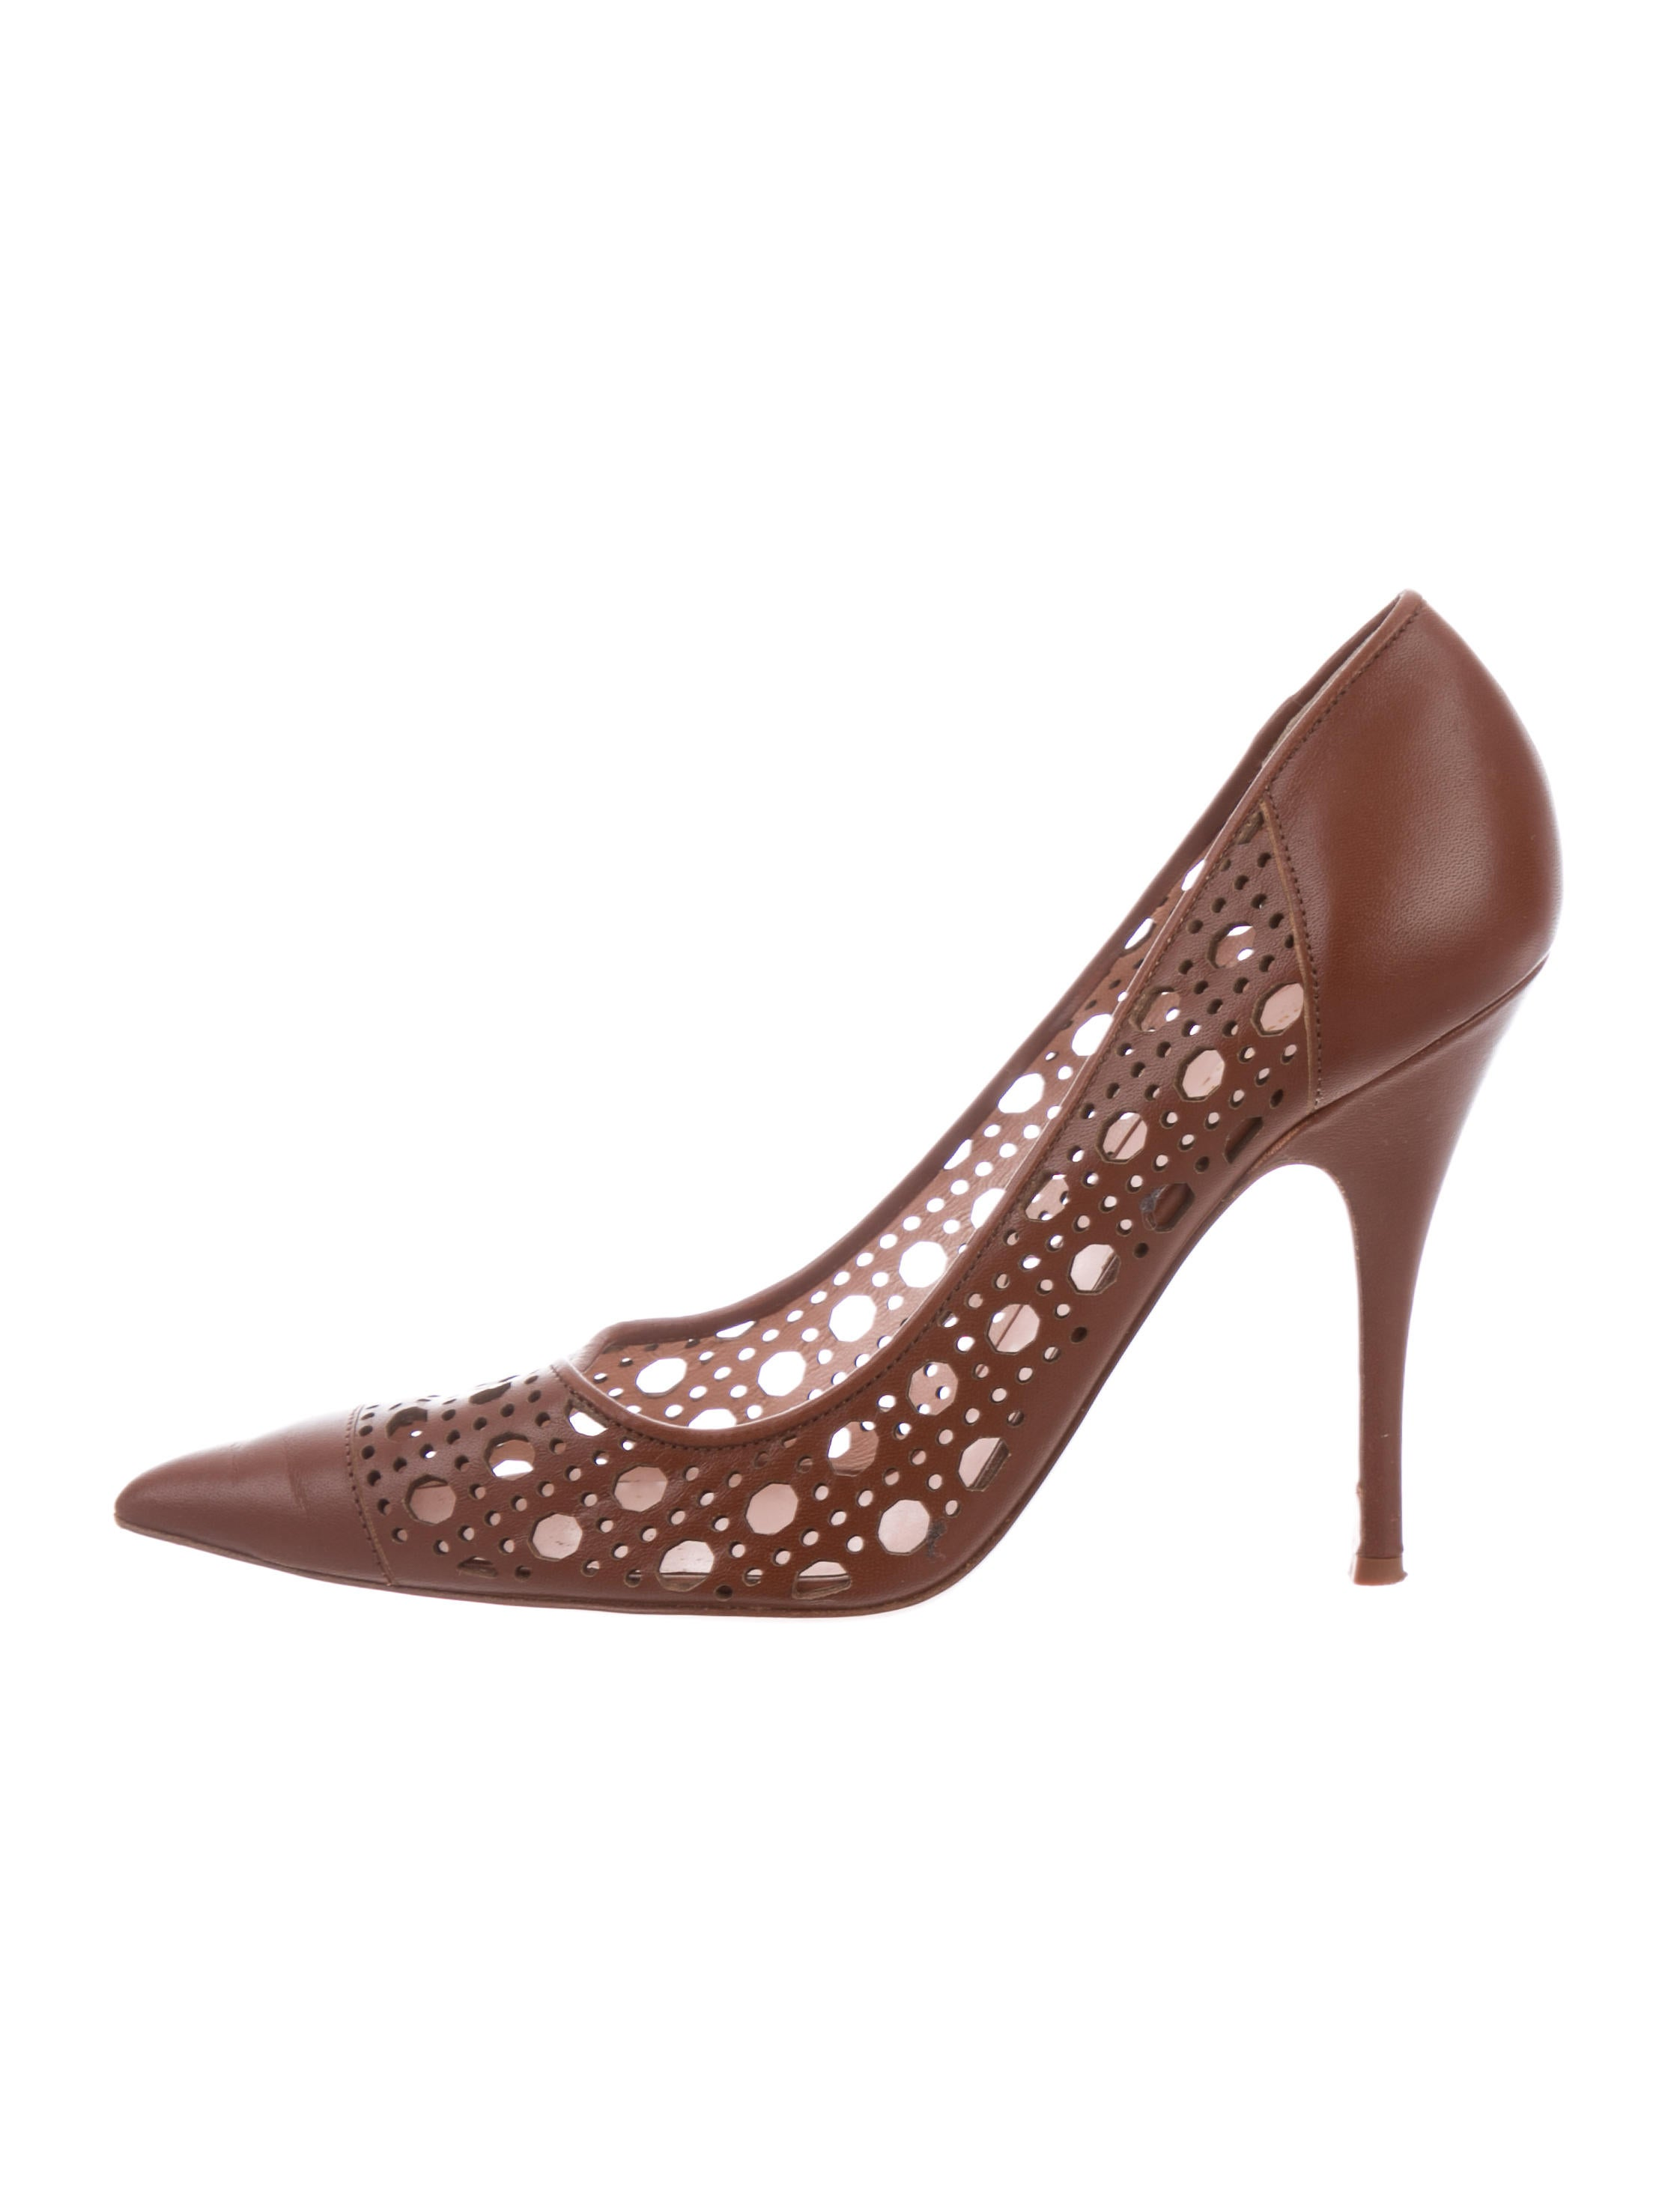 Kate Spade New York Perforated Pointed-Toe Pumps footlocker finishline cheap online clearance reliable free shipping find great EhKPdITZYm